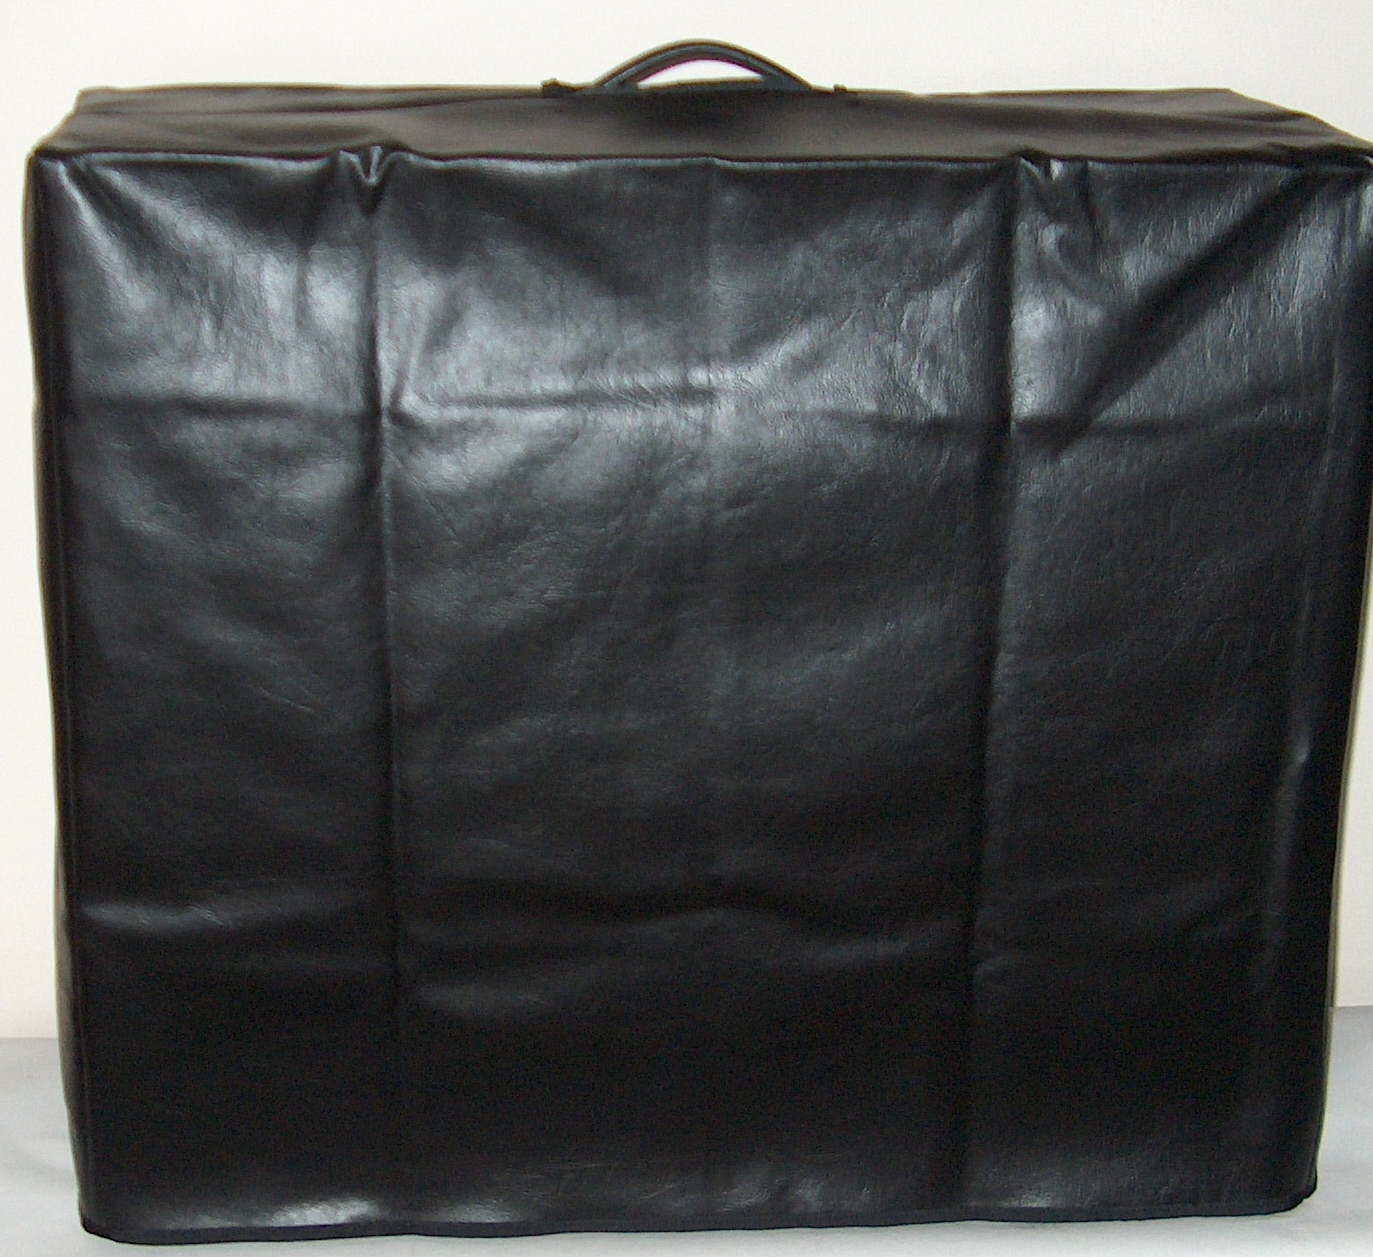 60's Gemini 1 Cover Black